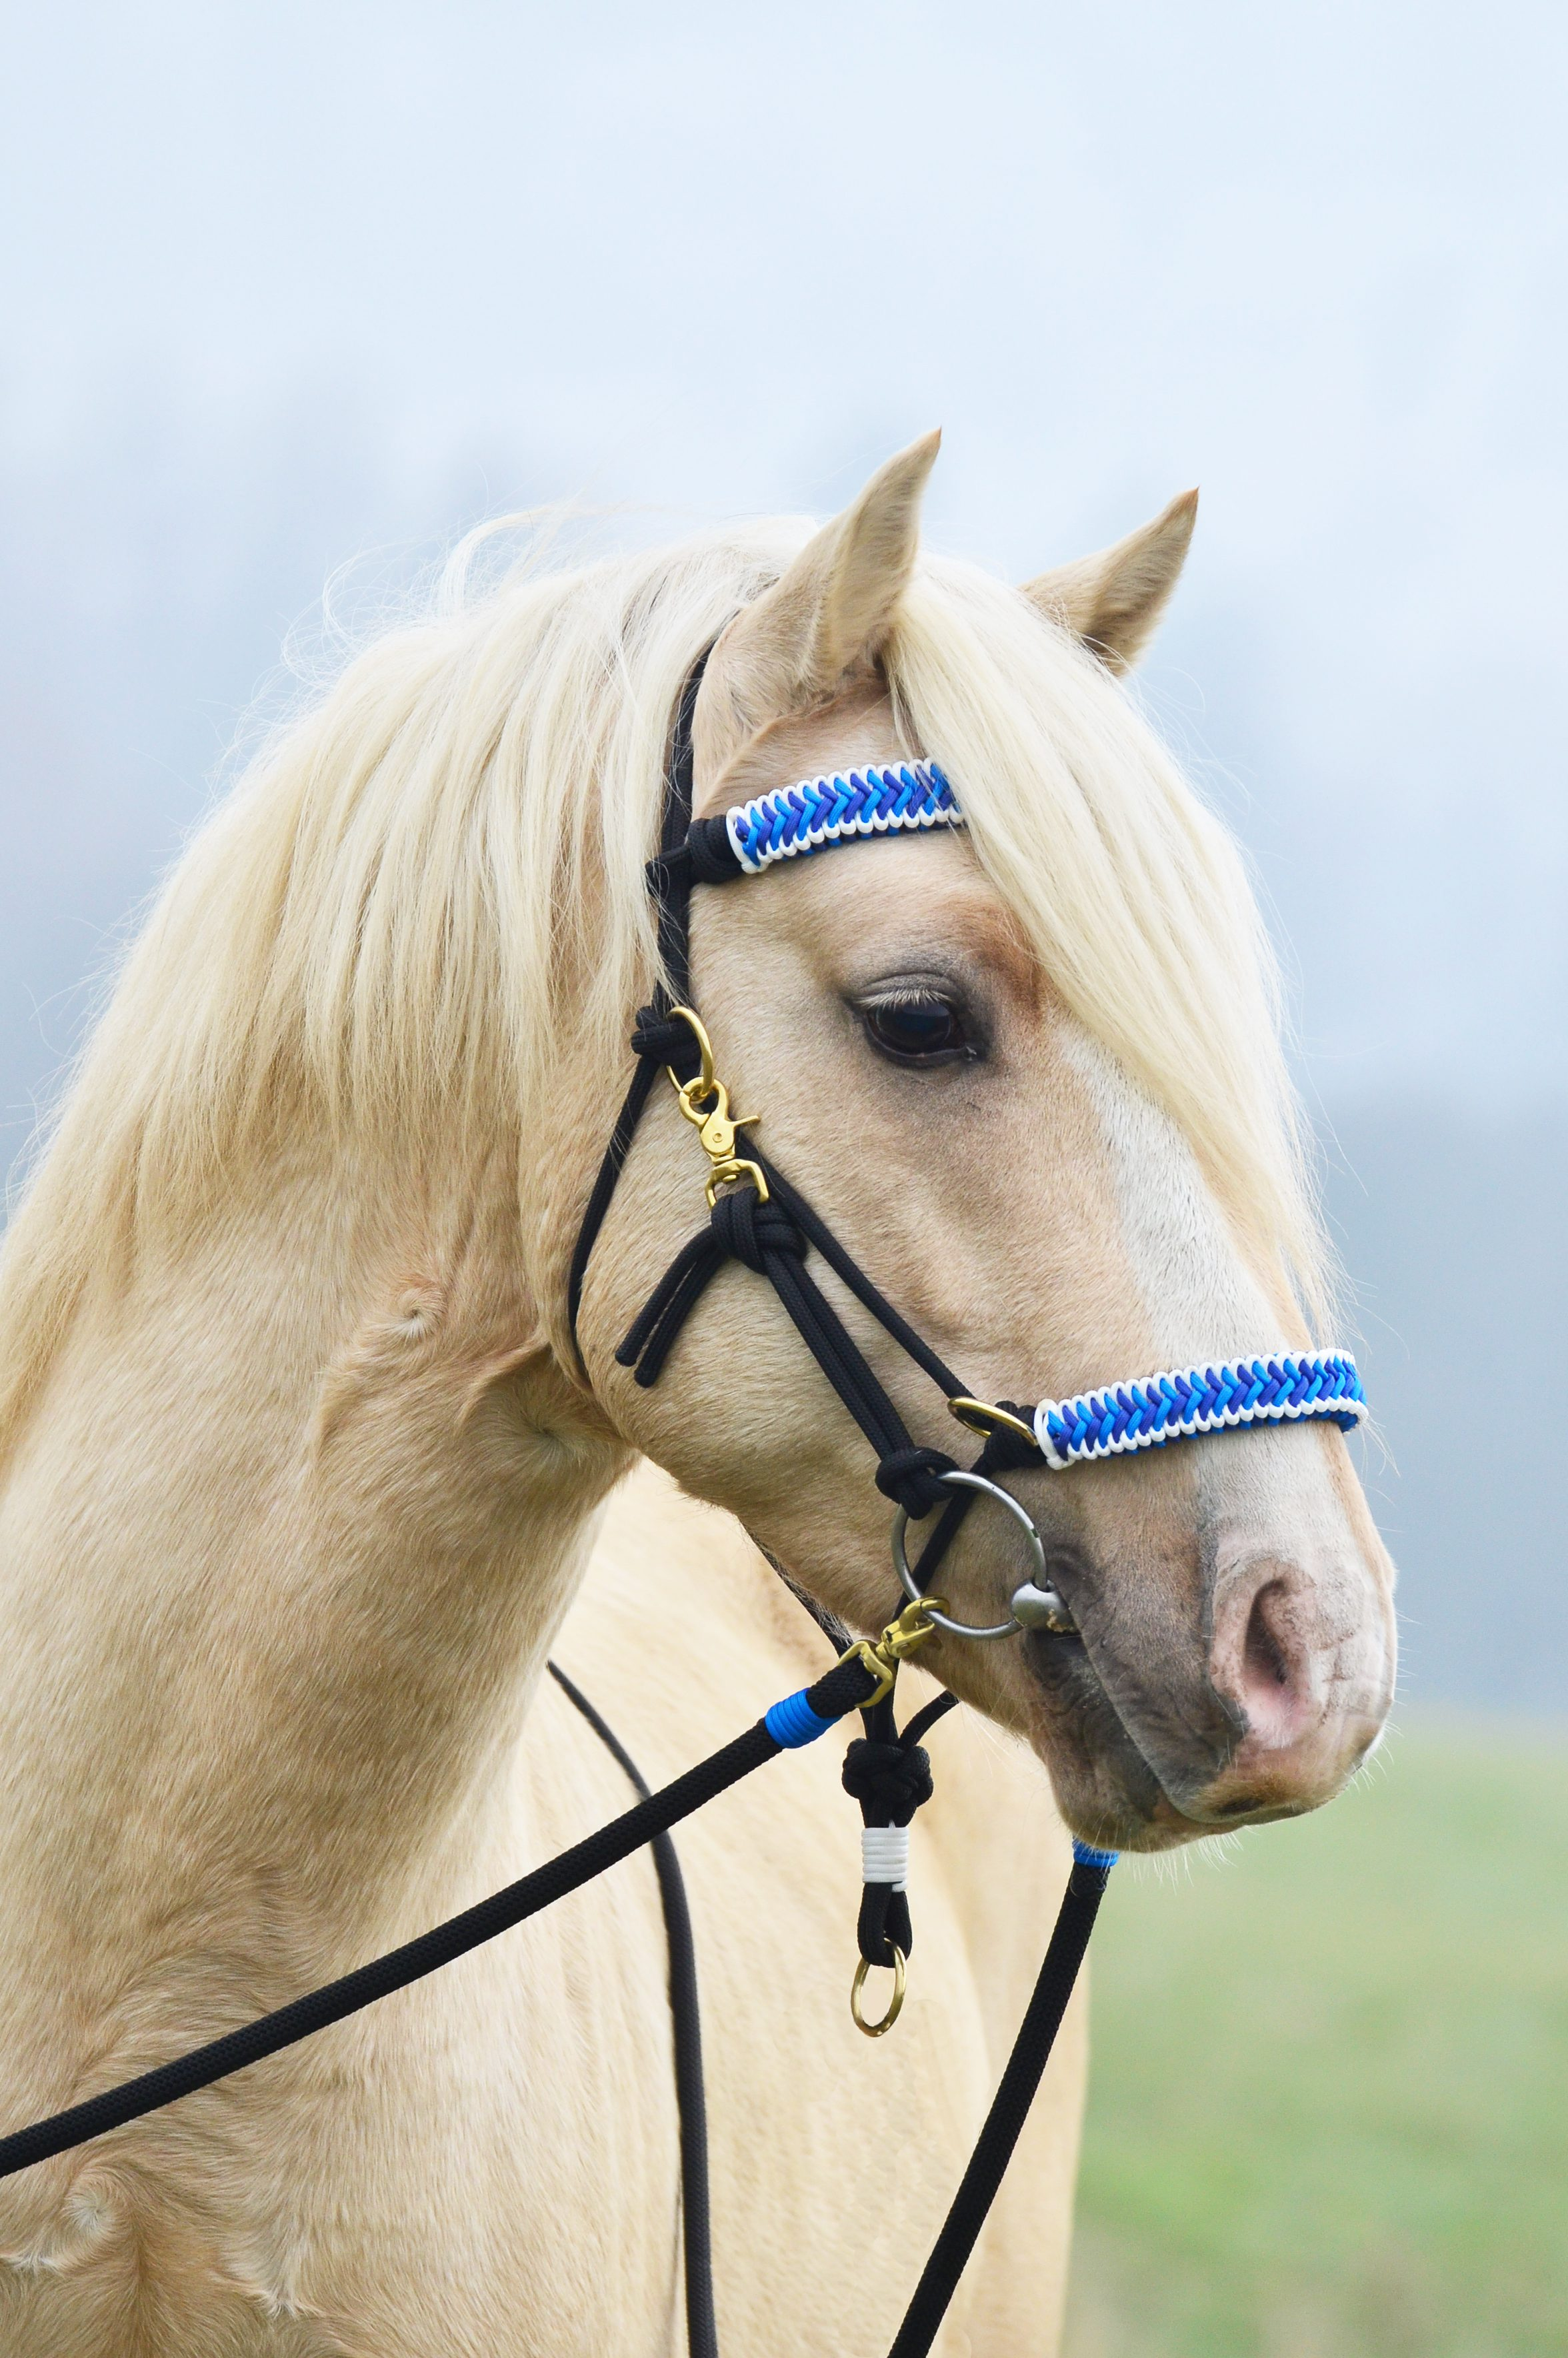 Paracord horse halter for Paracord horse bridle